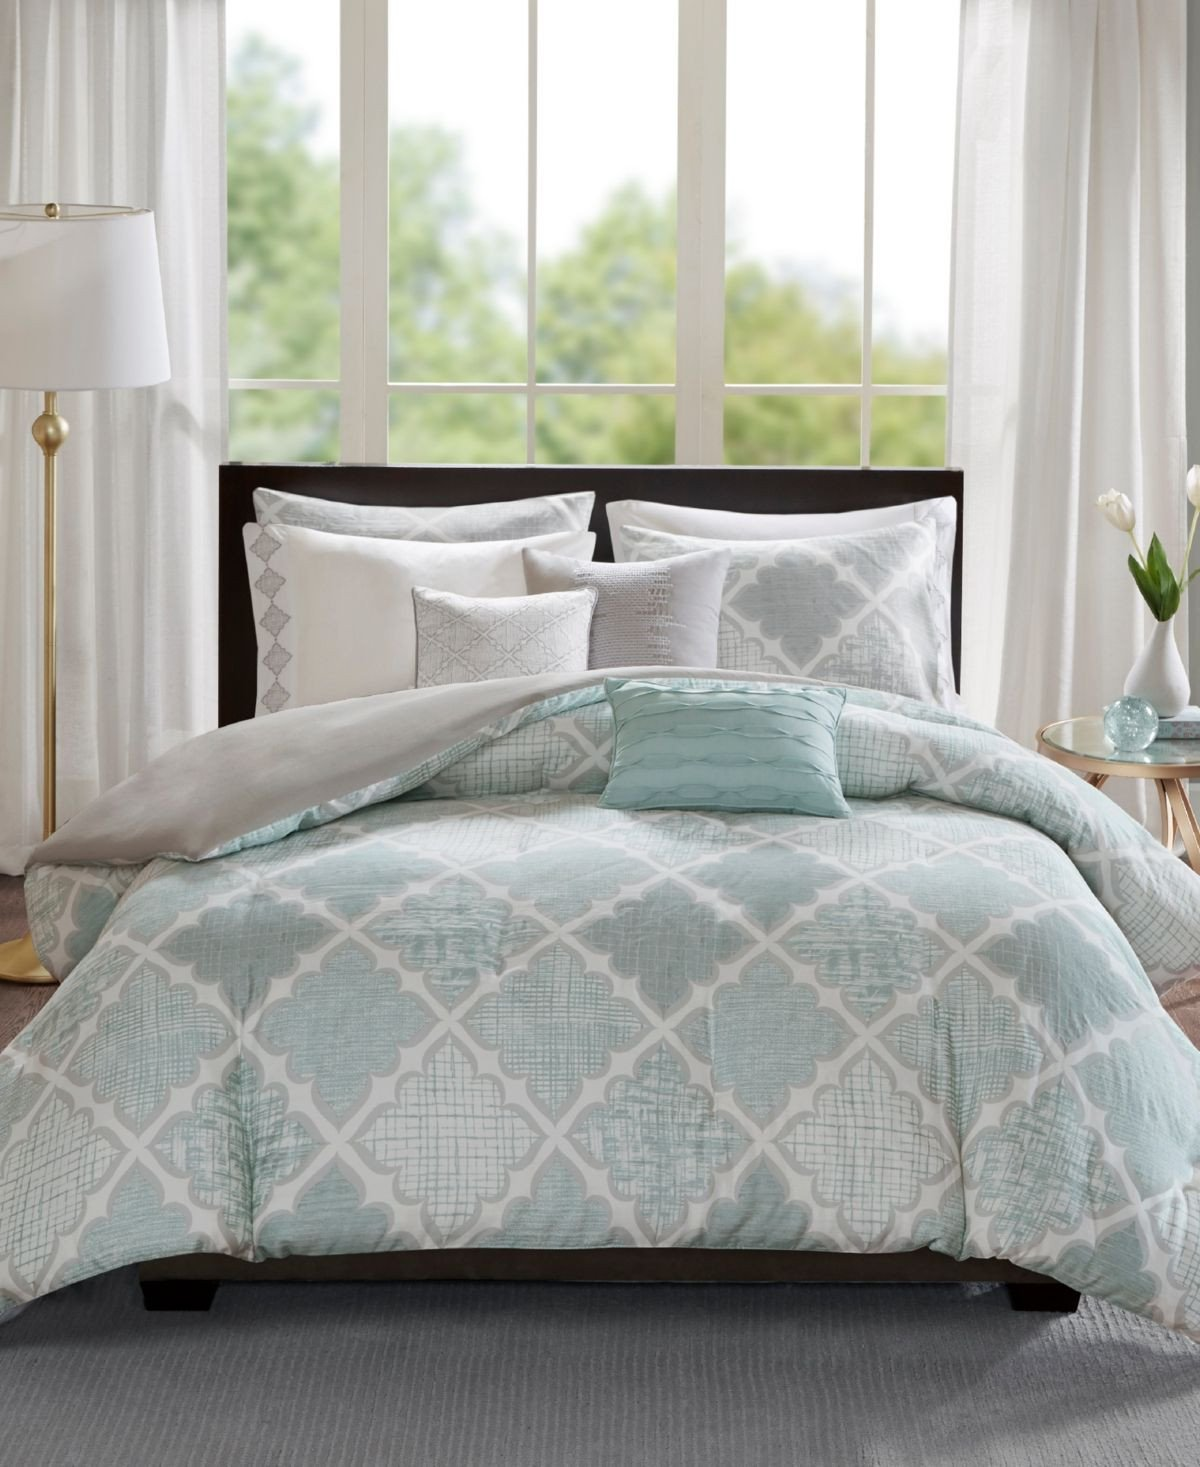 Gray and Aqua Bedroom Lovely Madison Park Cadence Cotton 8 Pc King California King Duvet